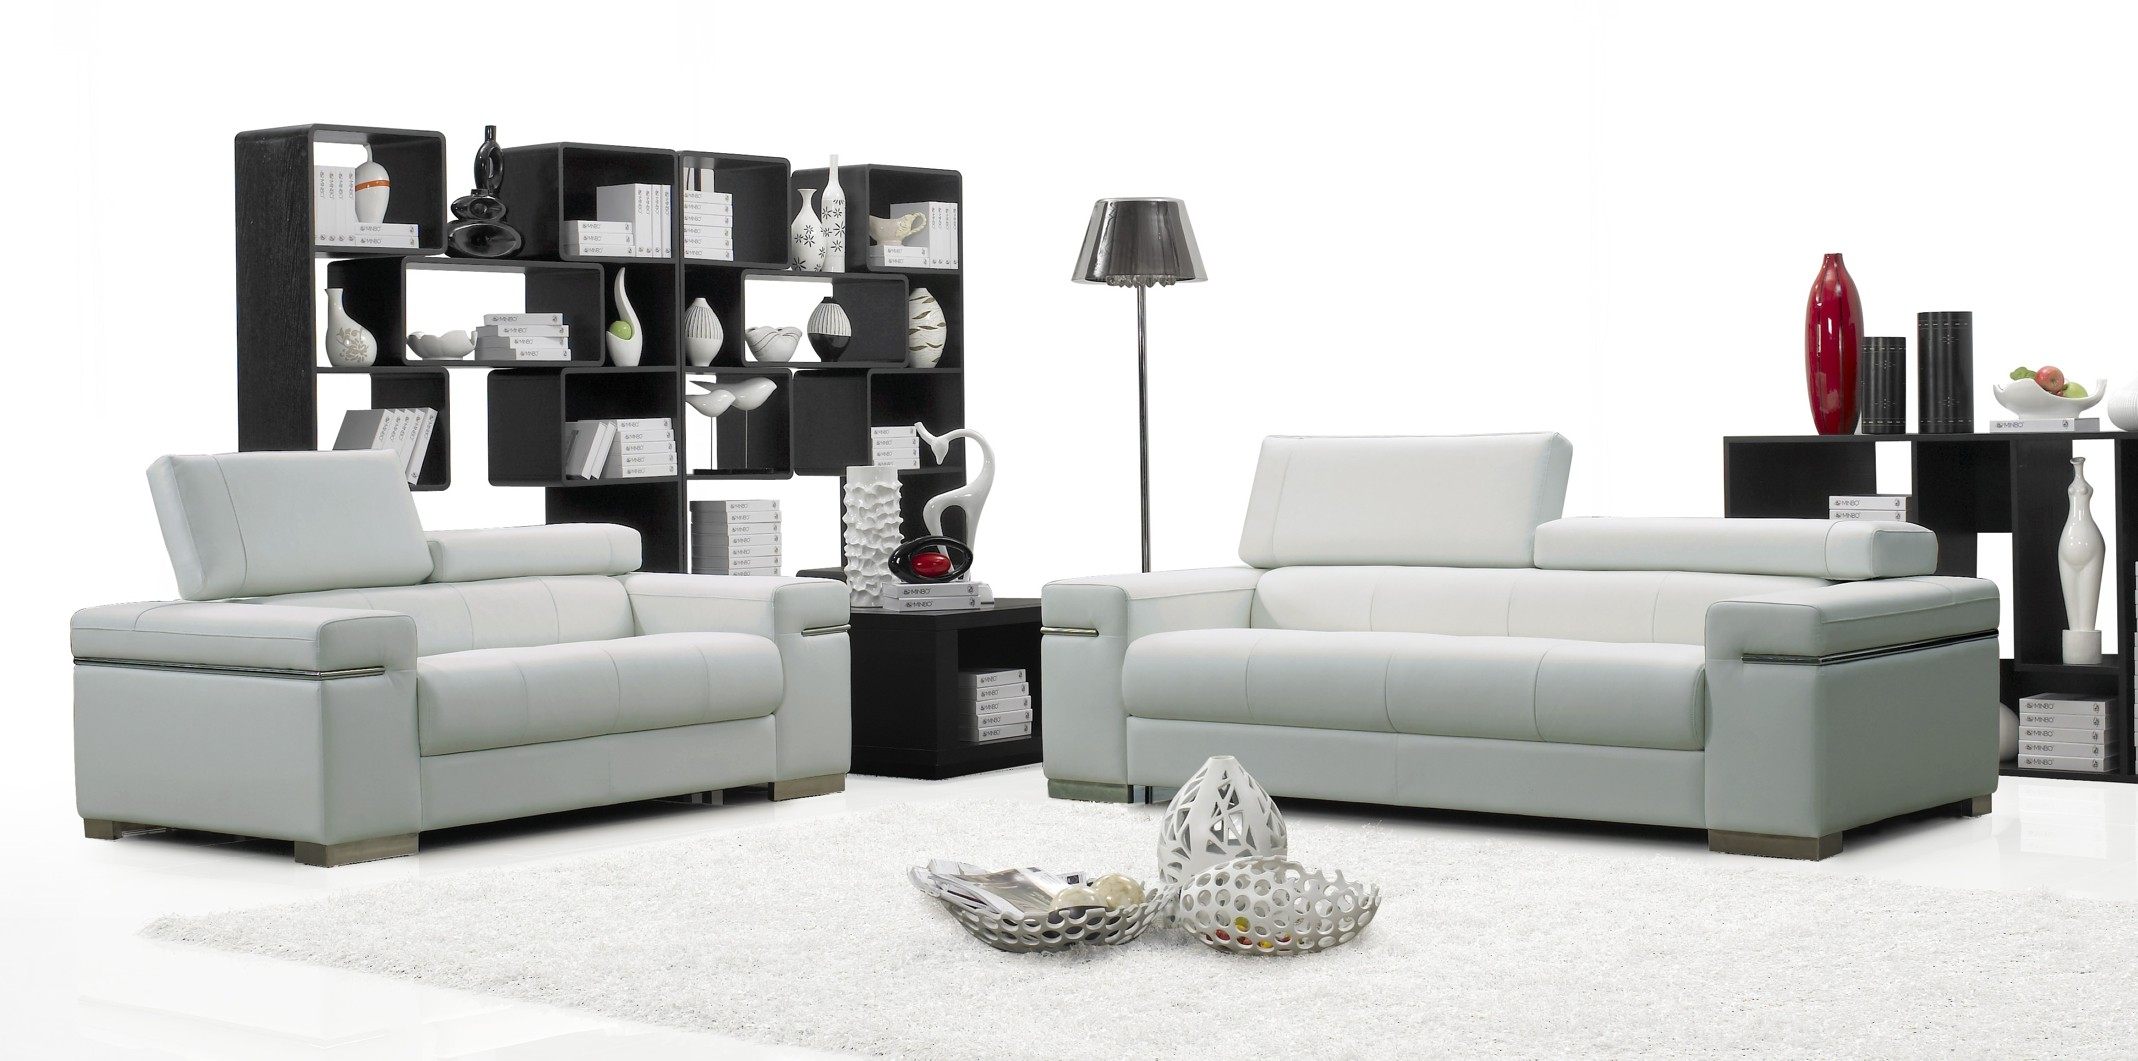 True modern furniture online homesfeed for House to home furniture